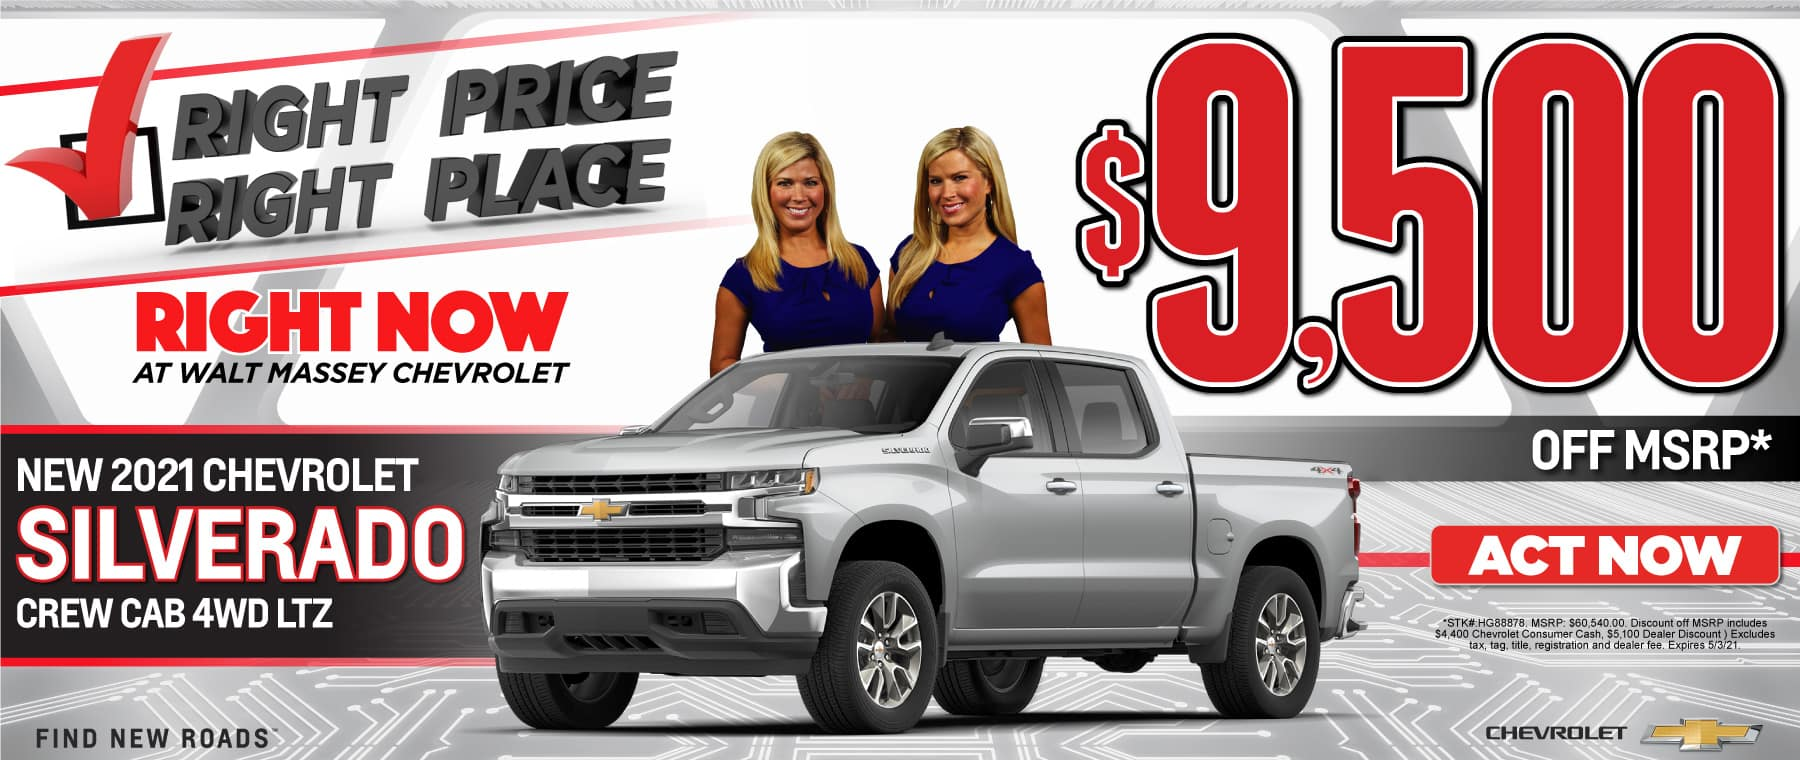 New 2021 Chevy Silverado - $9500 off msrp - Act Now